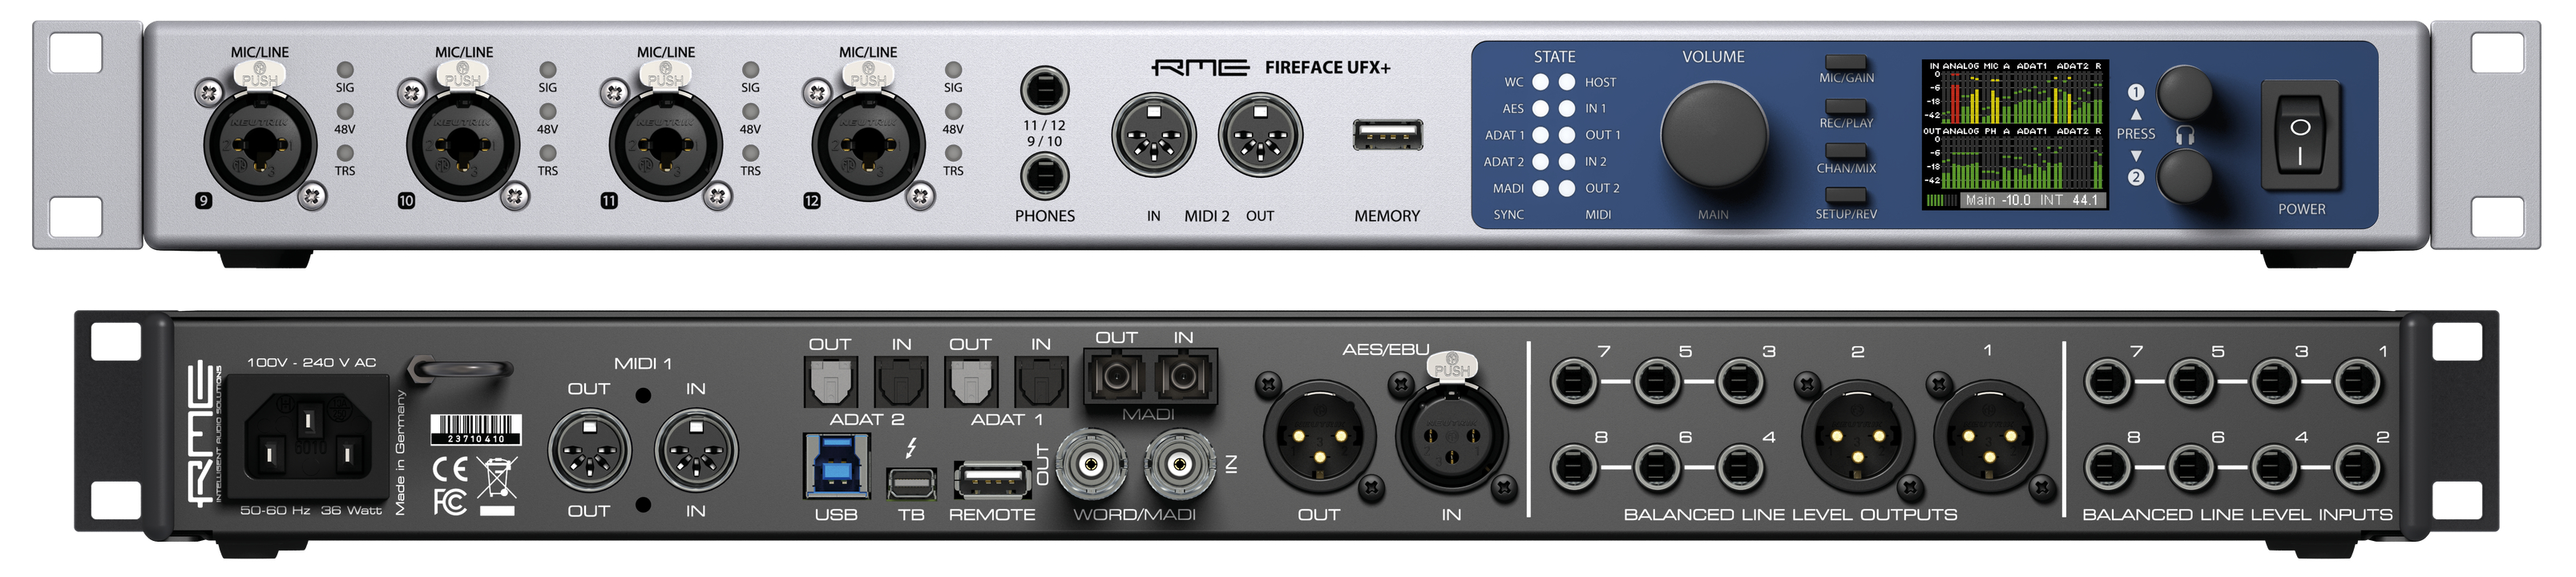 RME_Fireface_UFX+_Front_Back - 01 - Synthax Audio UK